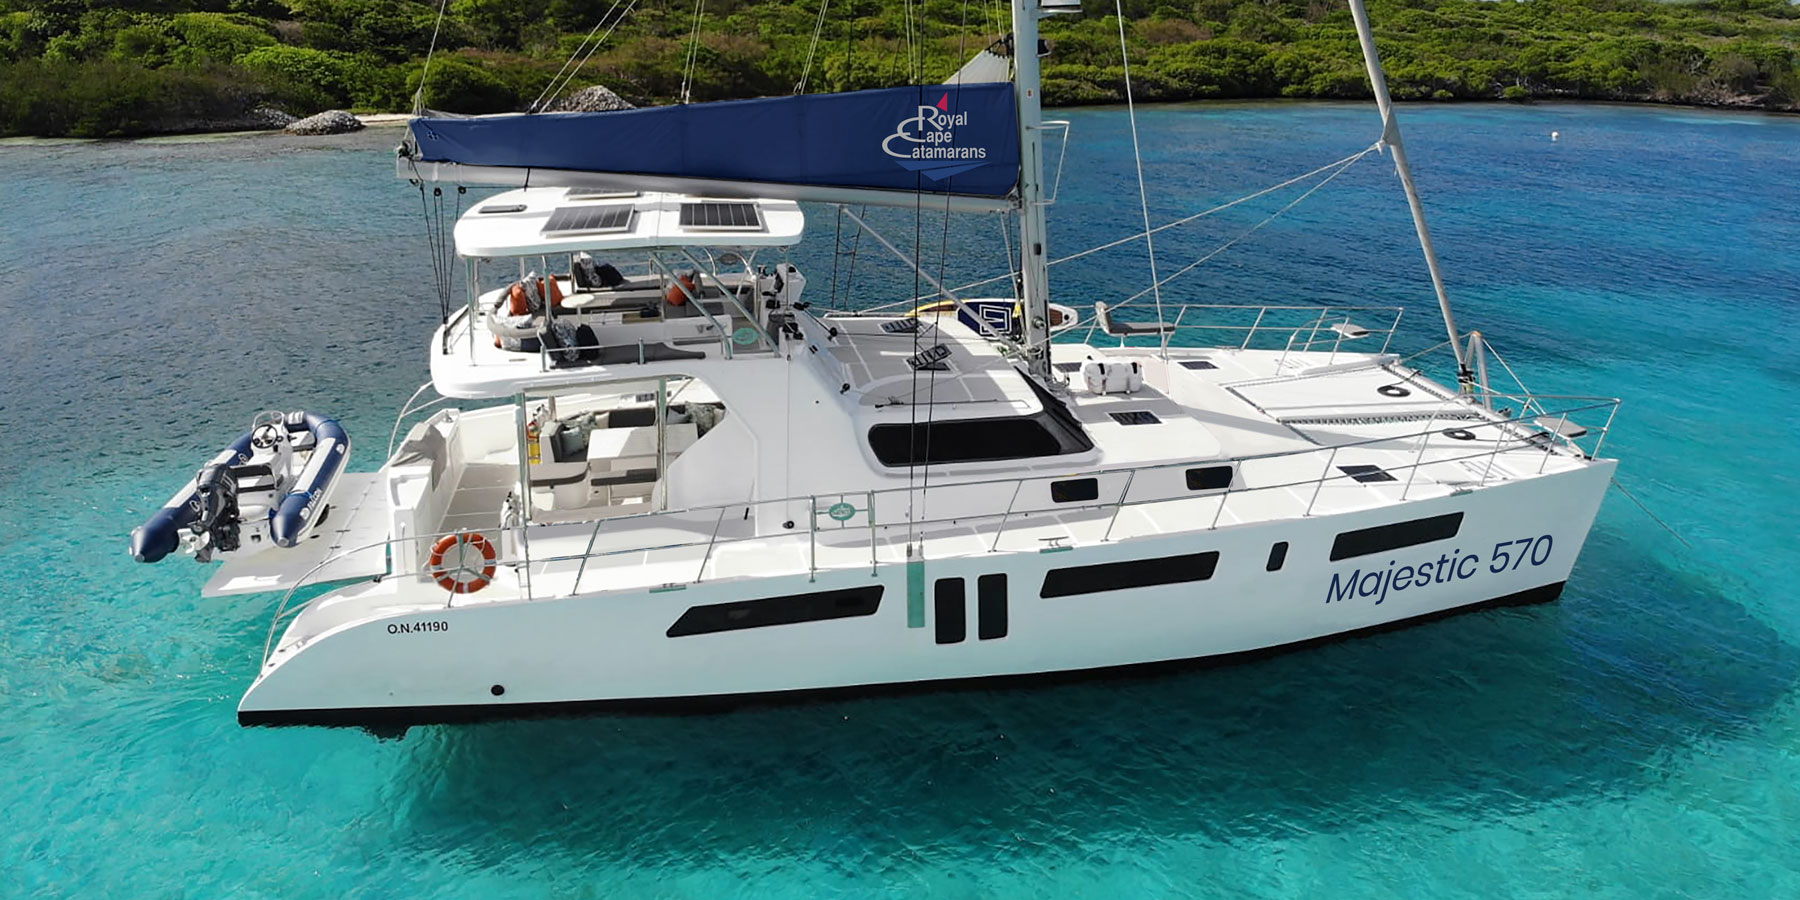 Royal Cape Catamarans, Majestic 570 Yacht